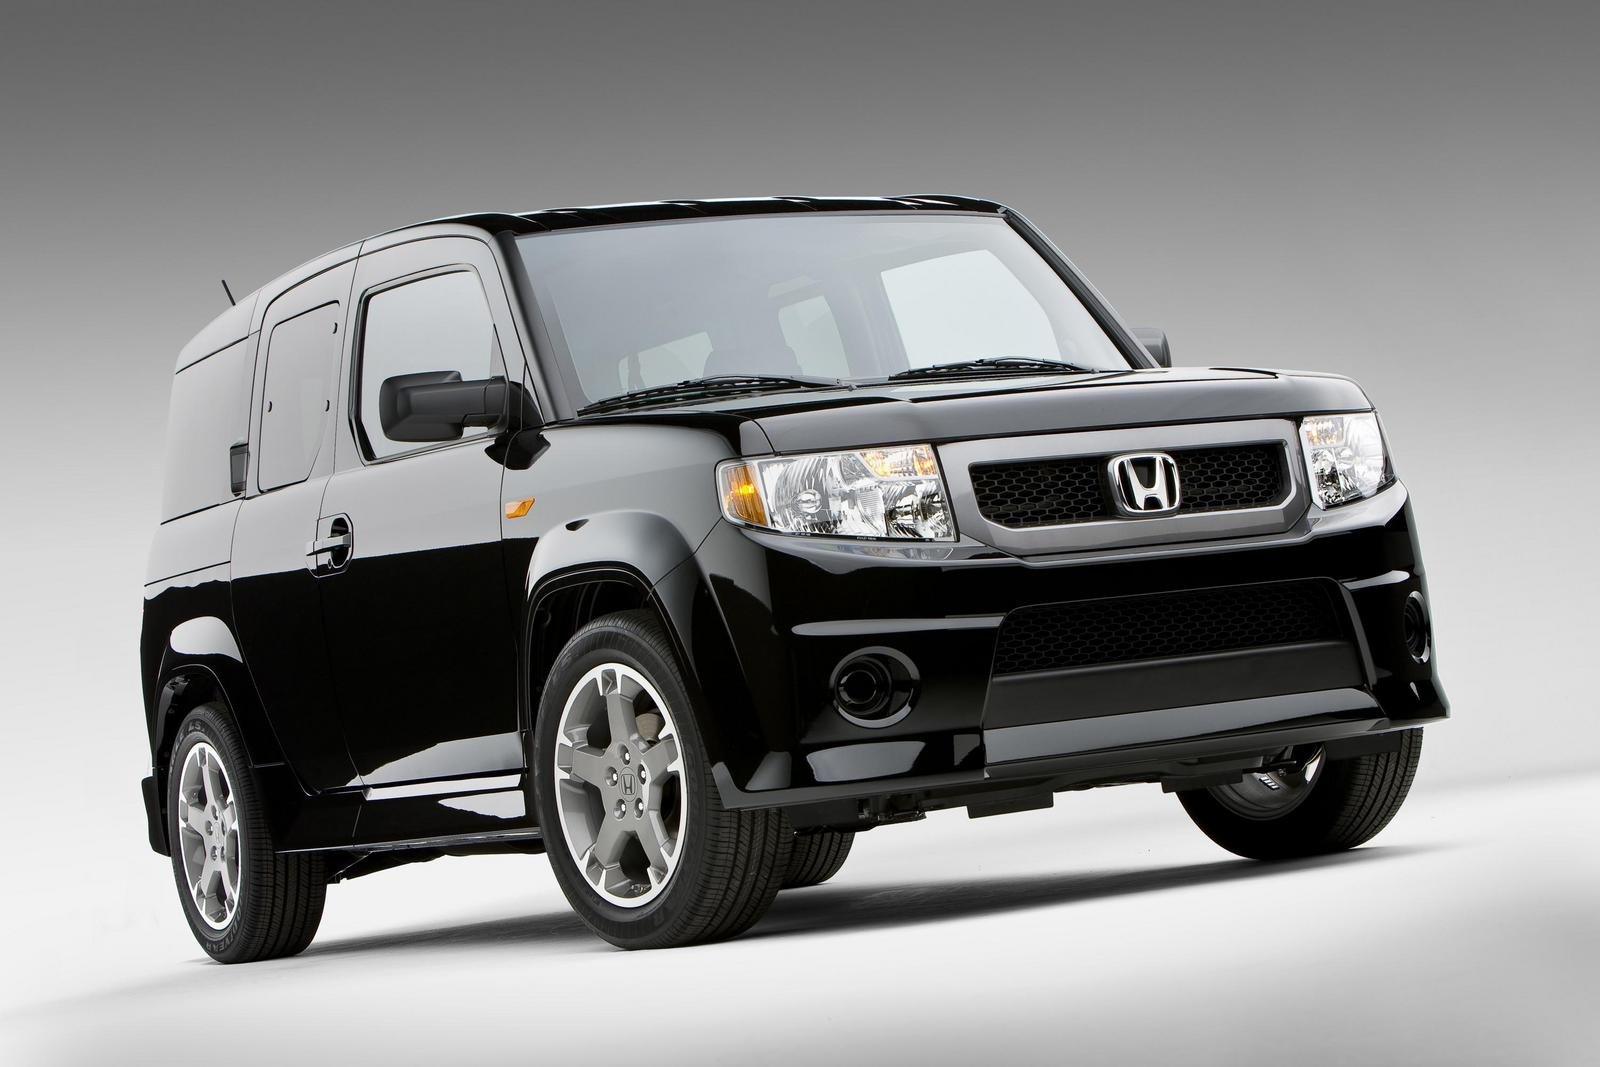 2009 Honda Element Review - Top Speed